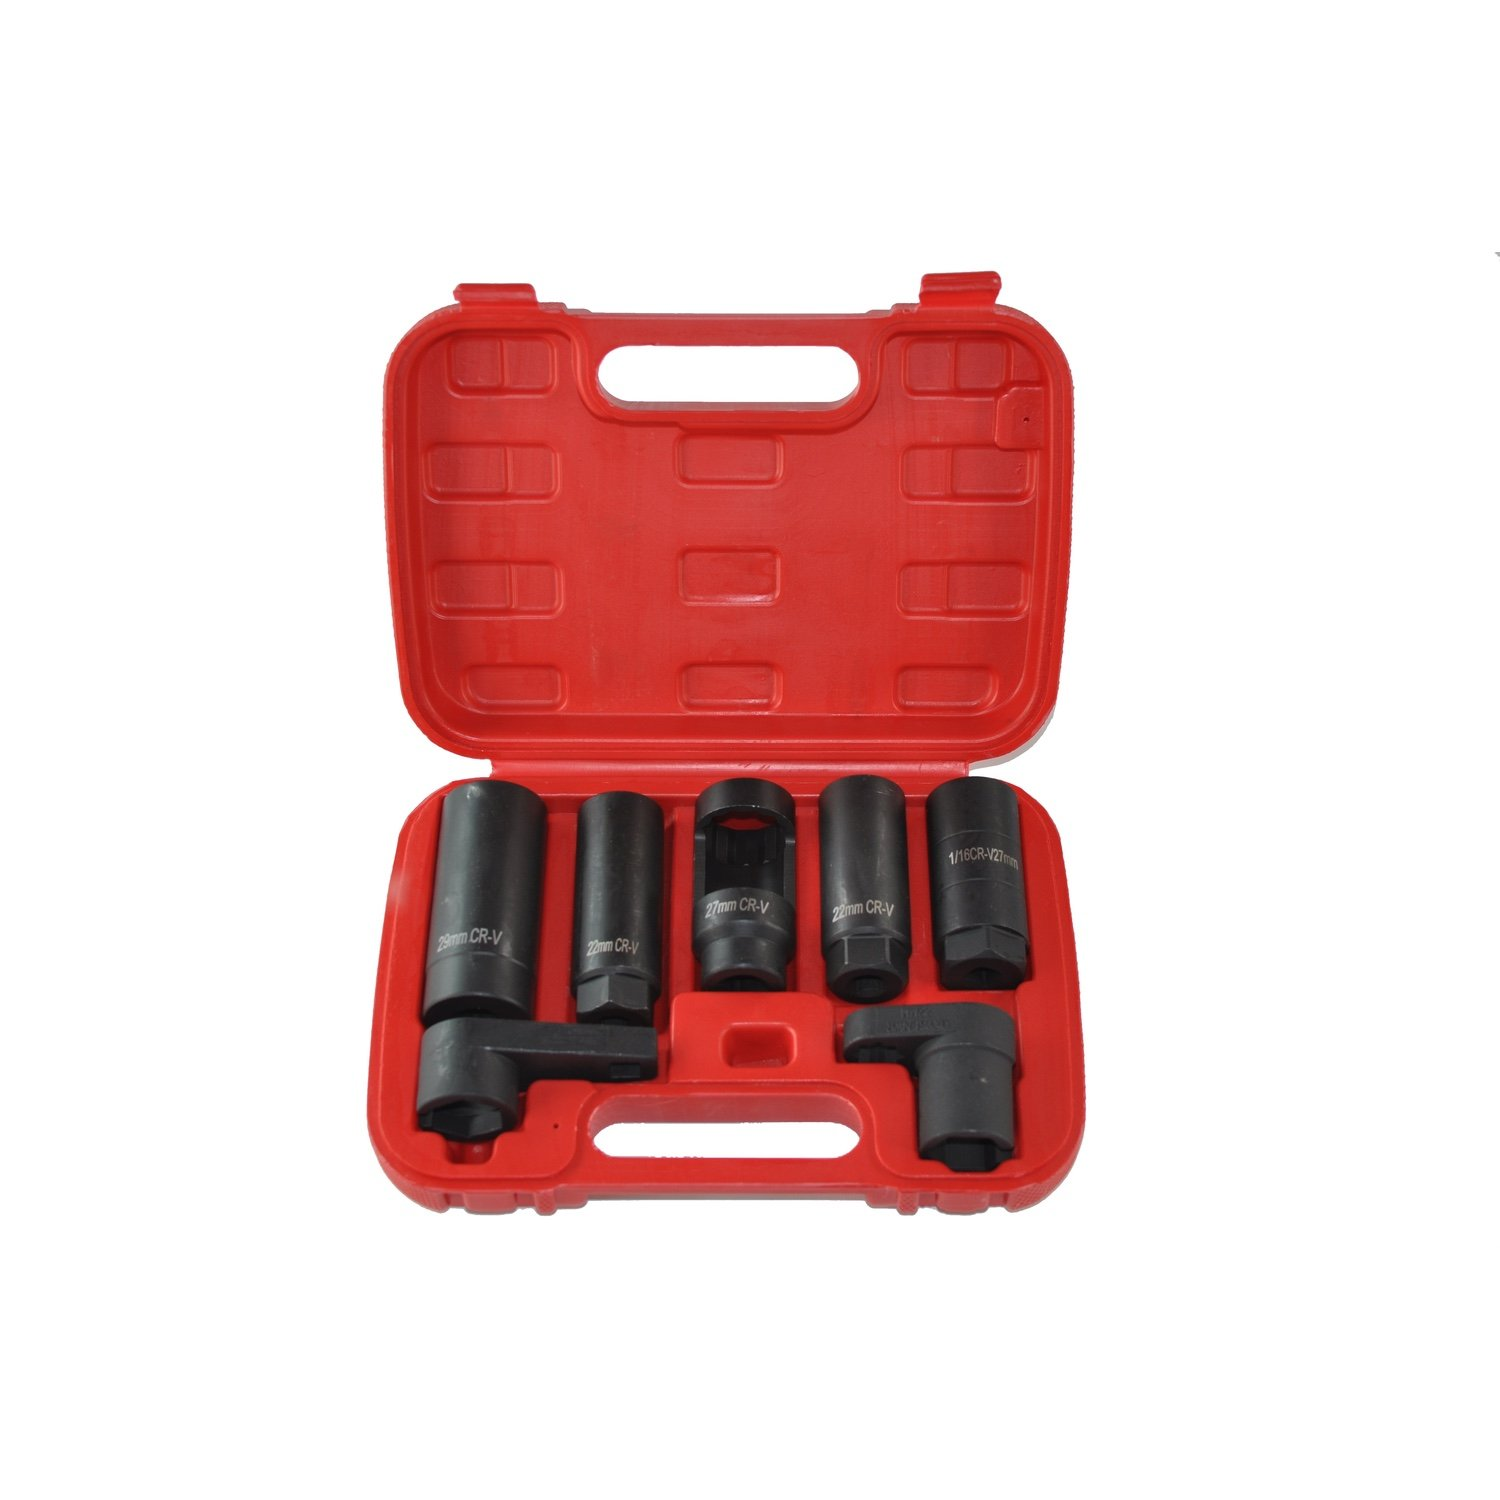 все цены на Set 7 Sockets Tool for Remove Lambda Sensor 22mm Car Oxygen Sensor Lambda Sensor sensor key онлайн